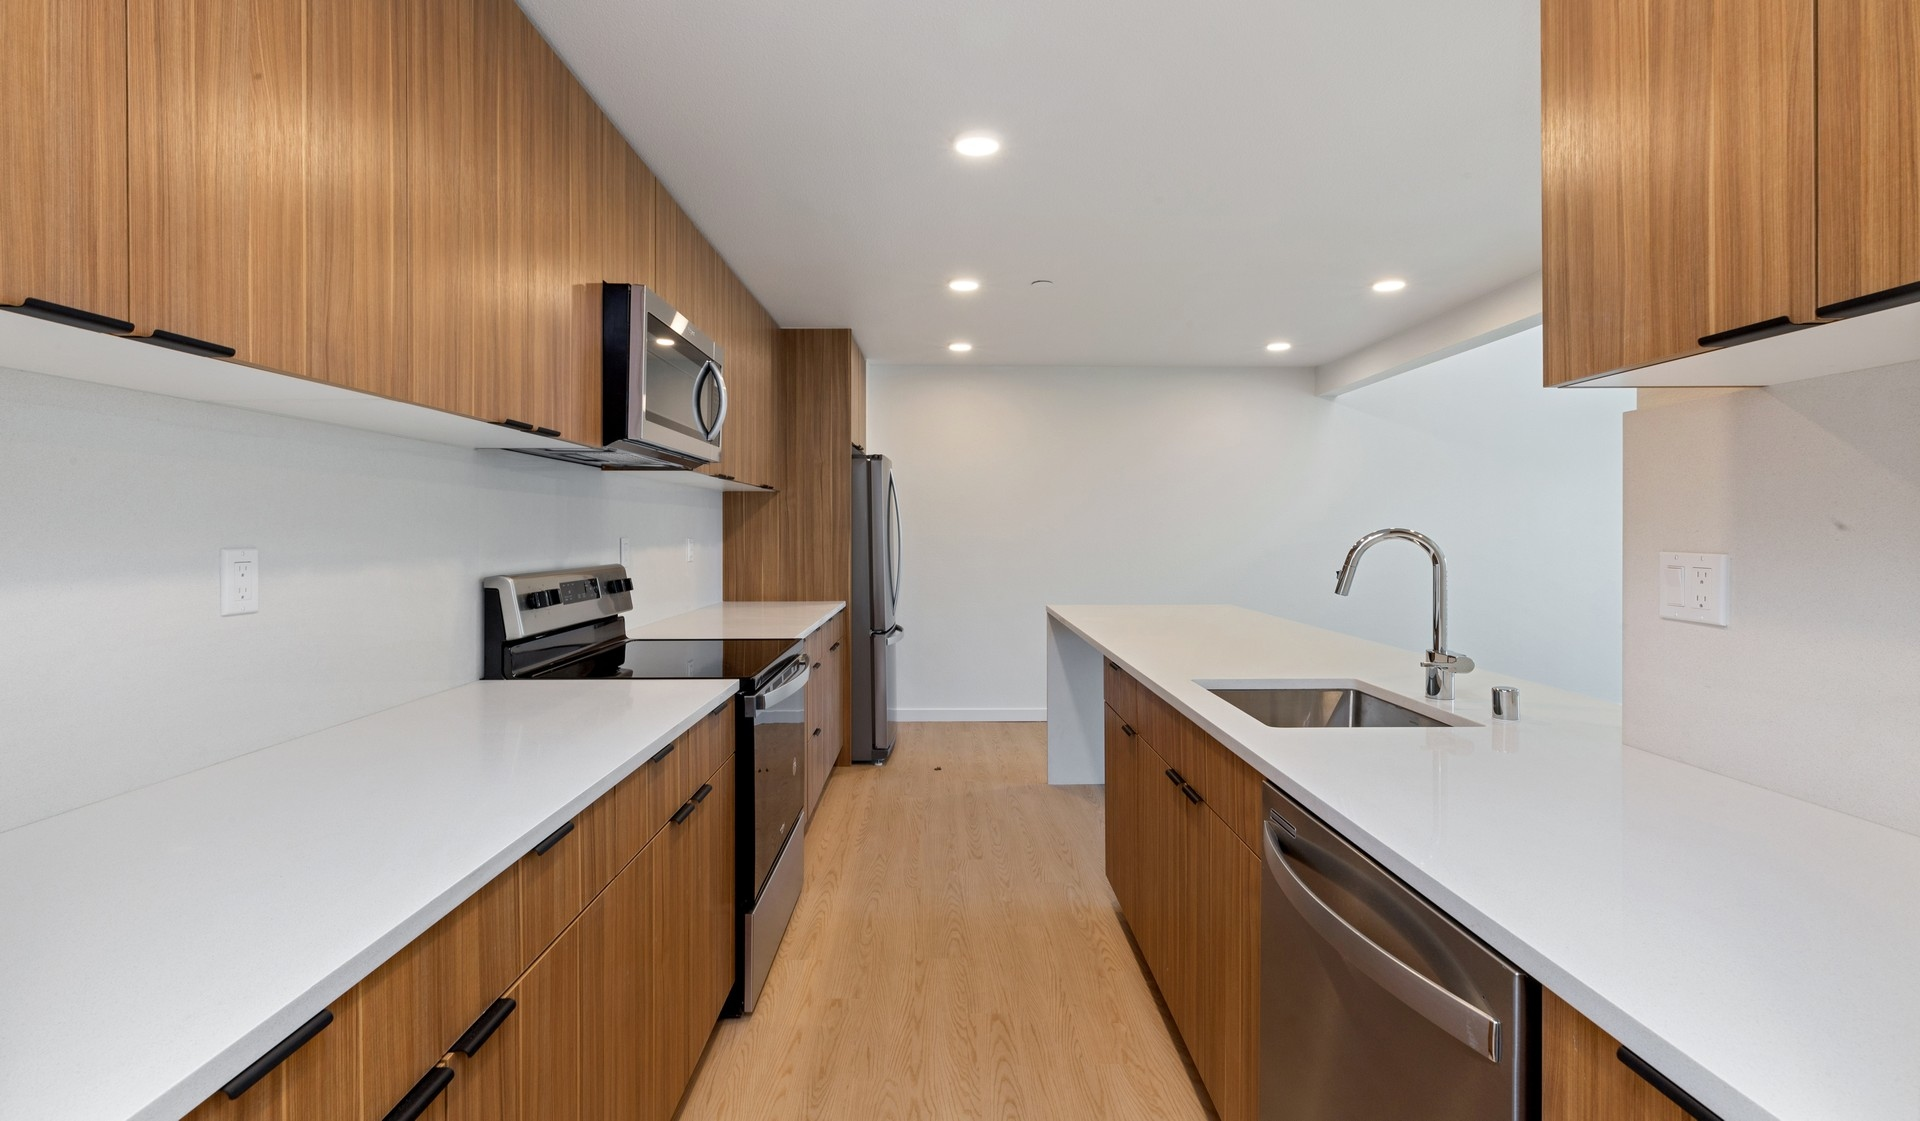 707 Leahy - Redwood City - kitchen